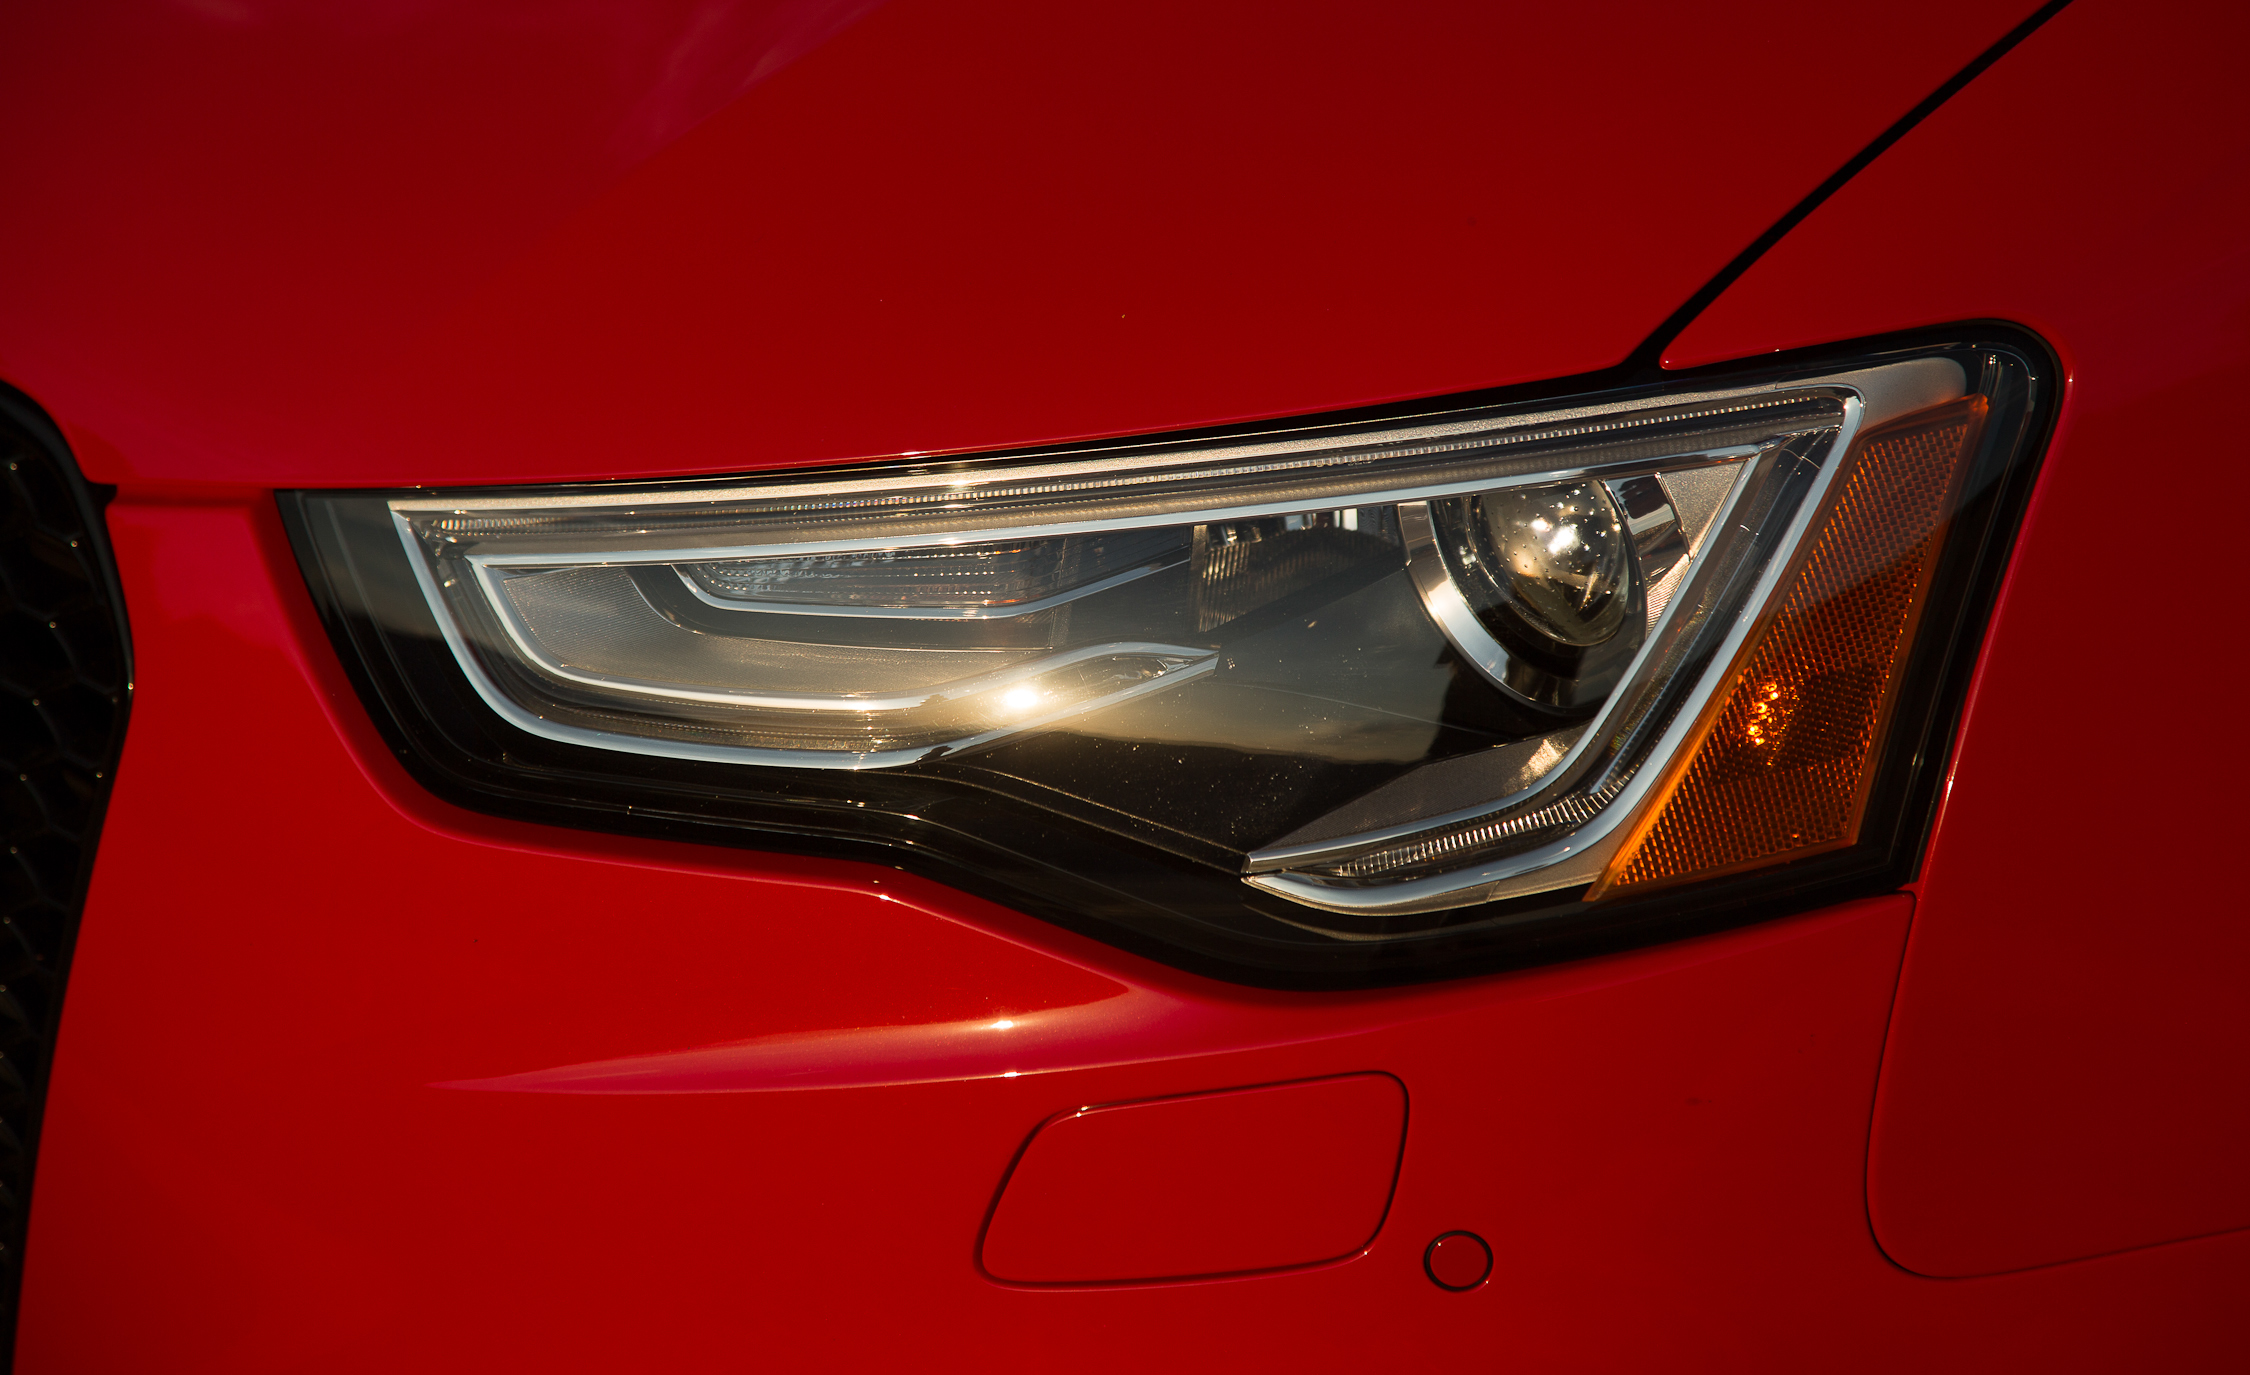 2013 Audi RS 5 Exterior View Headlamp (Photo 12 of 41)